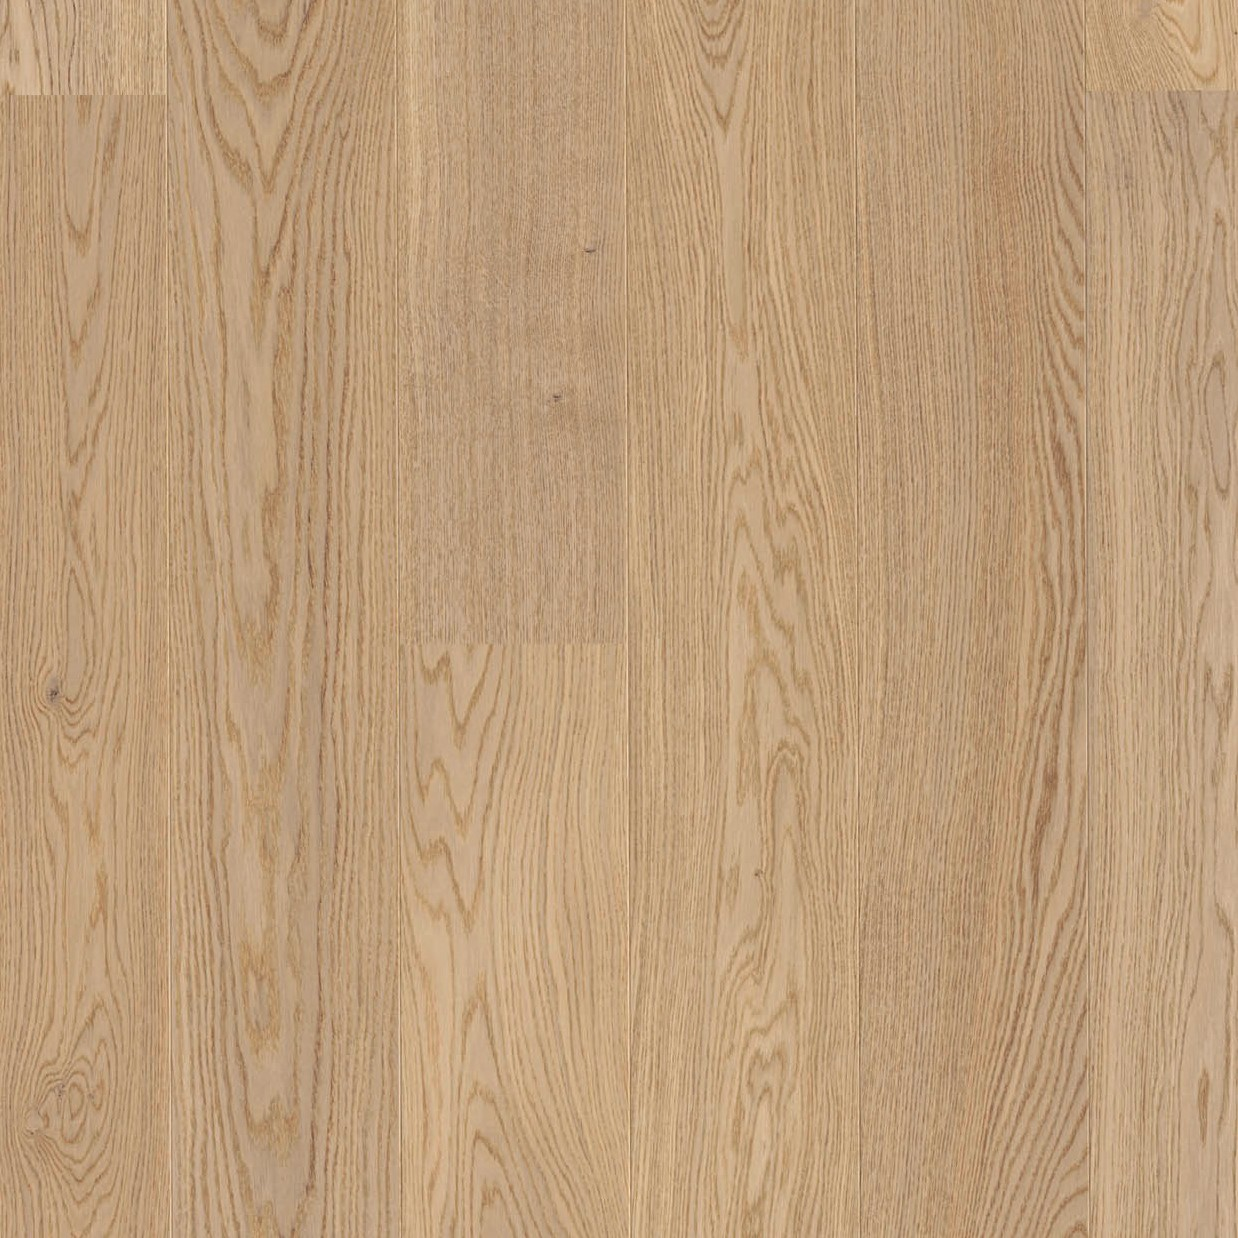 Boen Oak Andante White Stained 181mm Engineered Wood